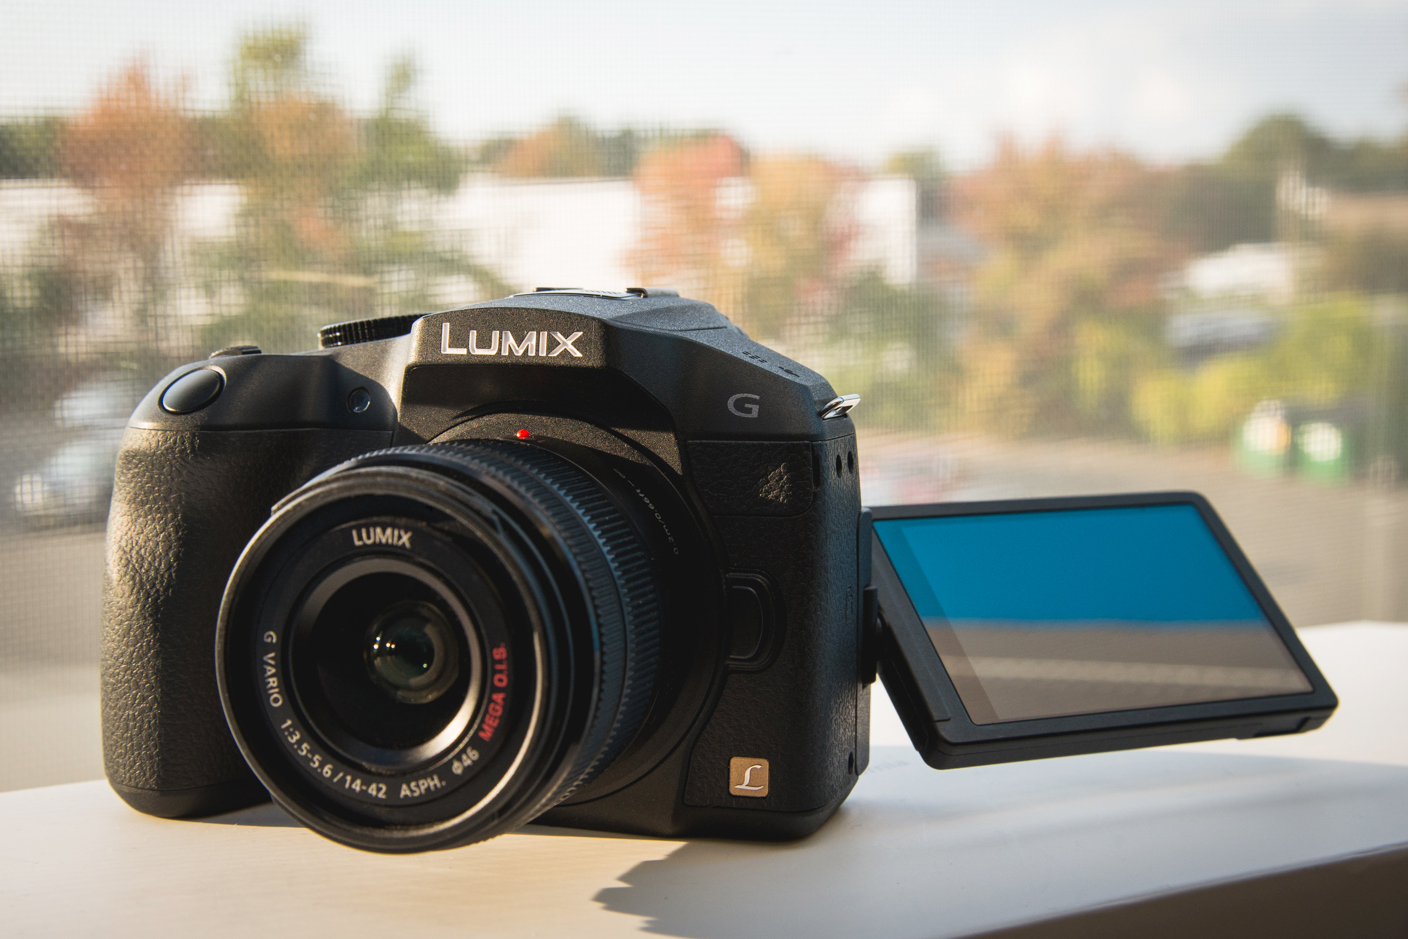 Panasonic Lumix G6 Hands-On Review